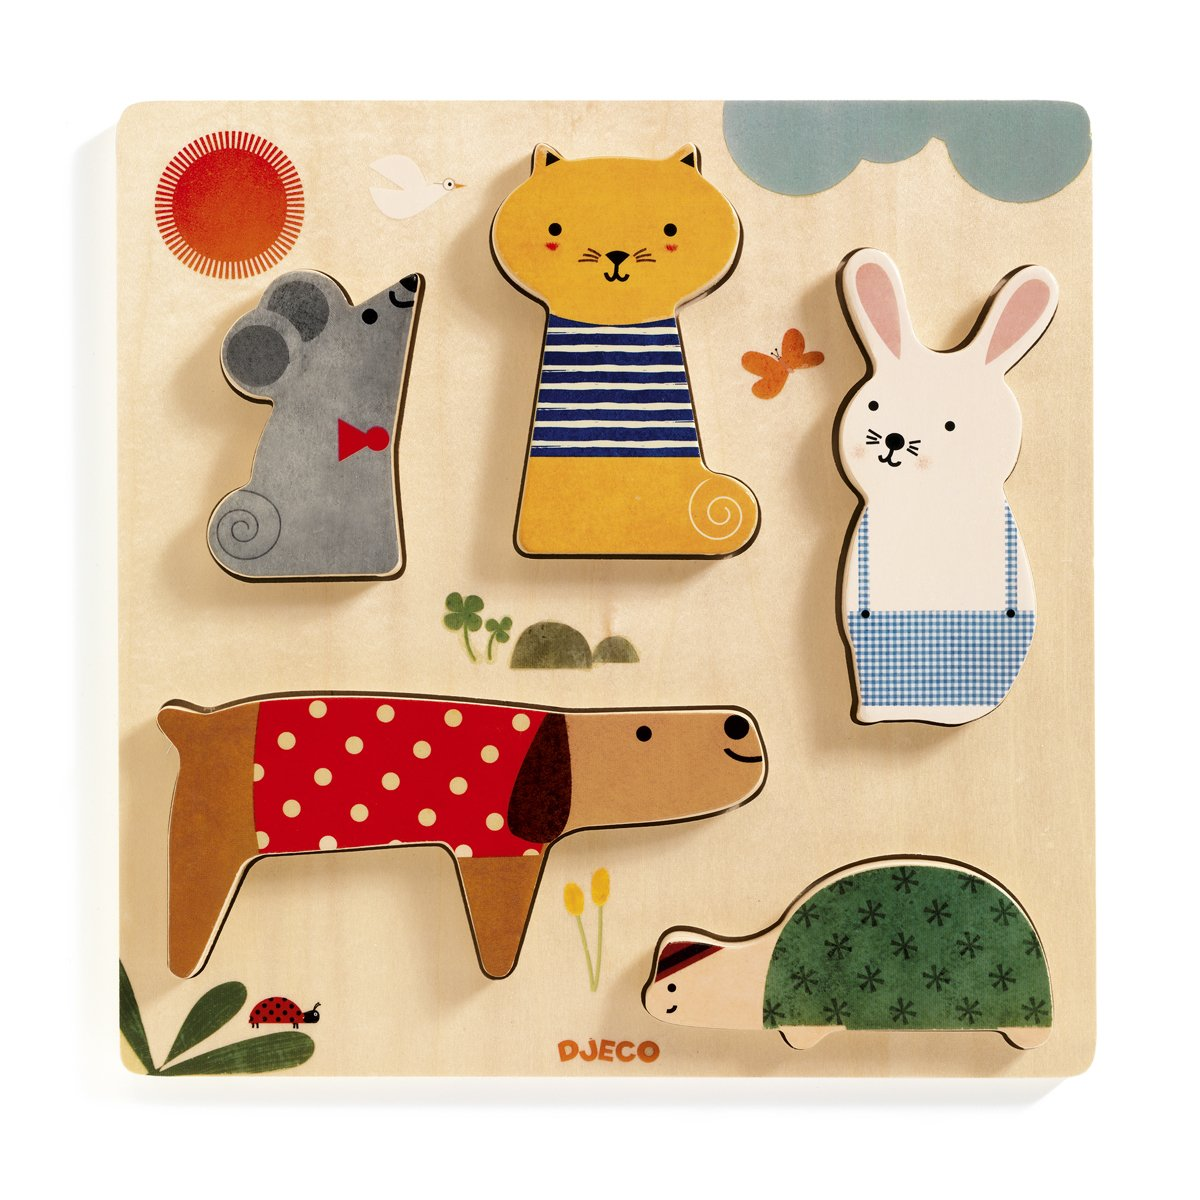 Djeco wooden Puzzle Pets